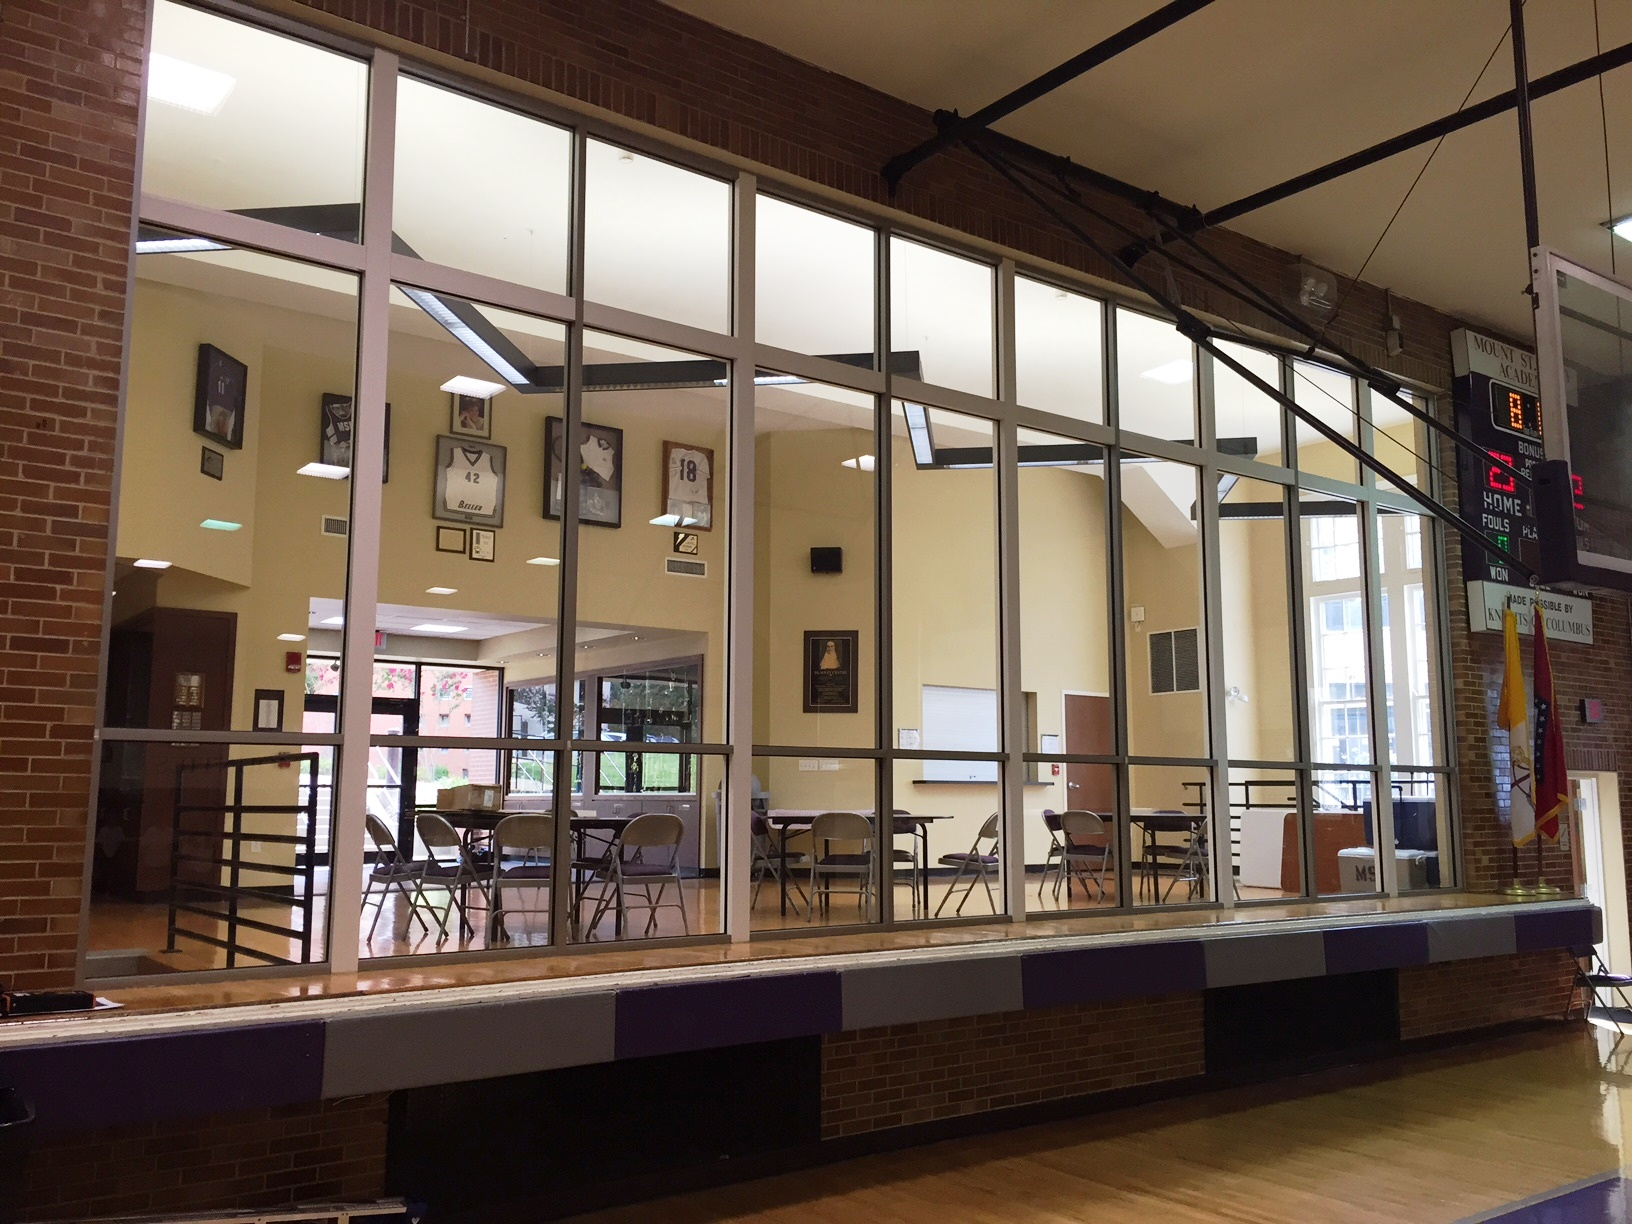 Photo of Mount St. Mary Gym window before